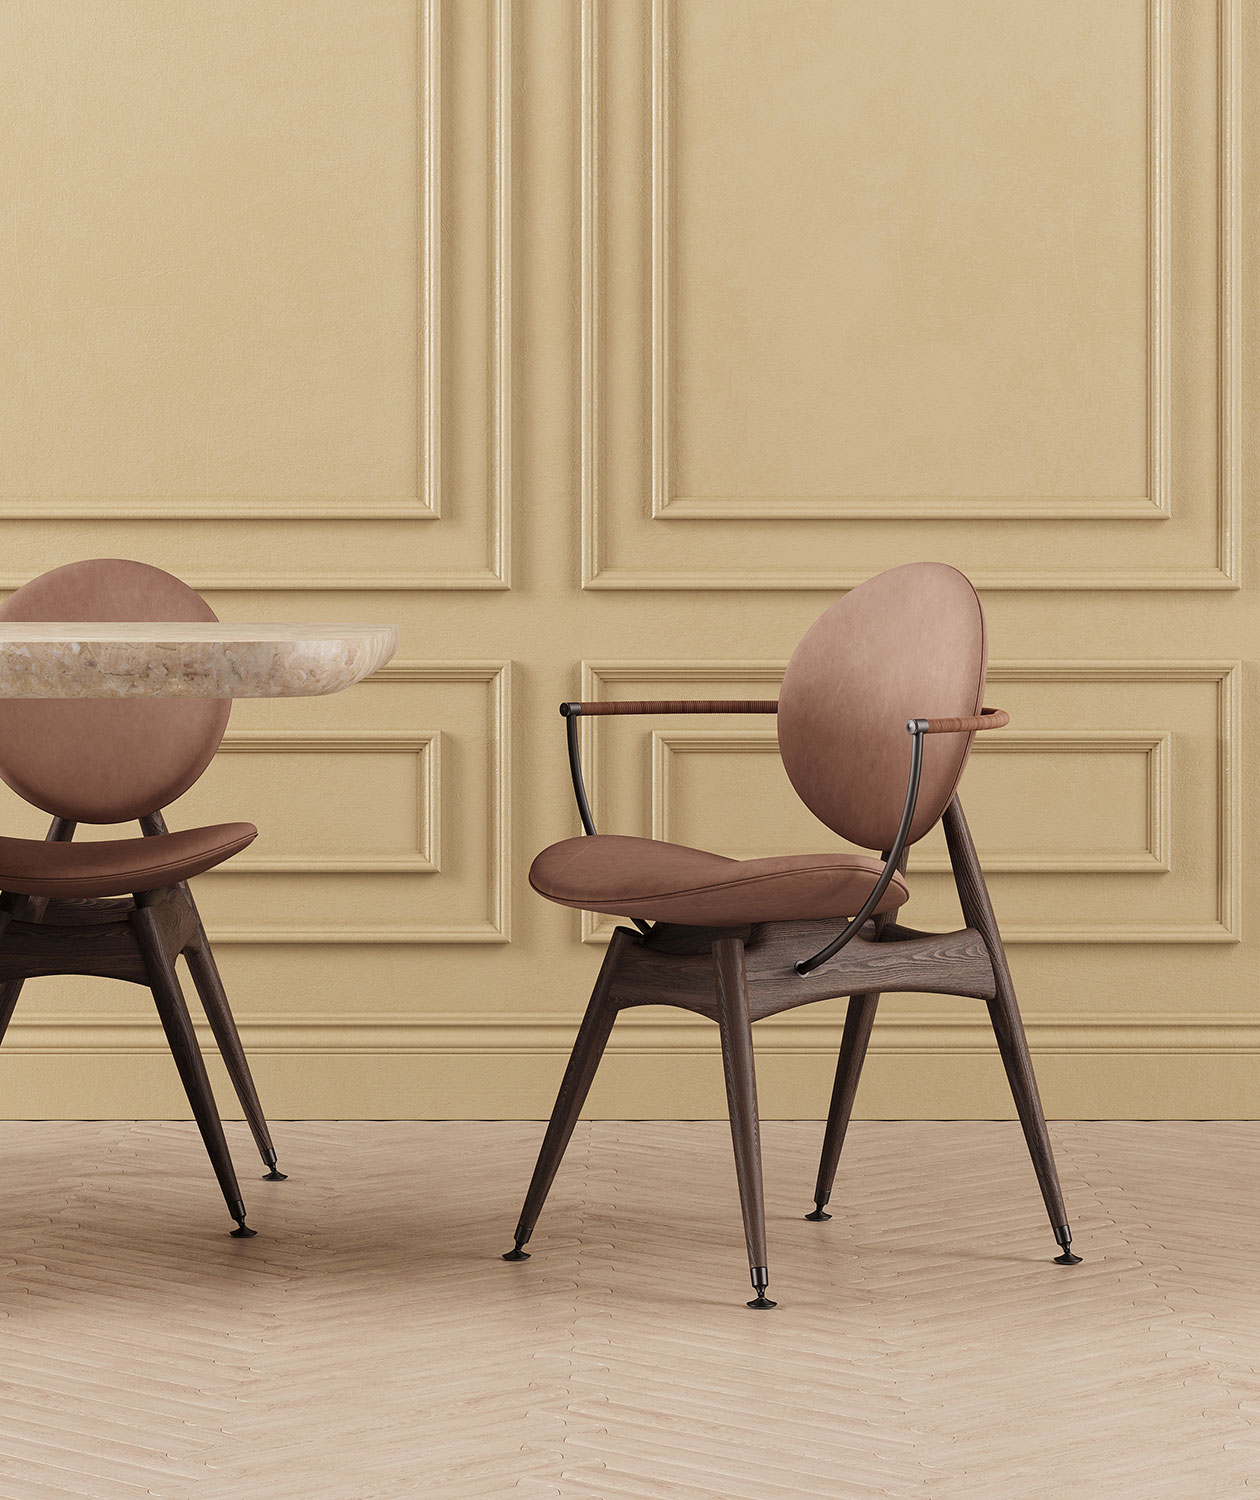 Circle-Dining-Chair-Matstone-Sand-Leather